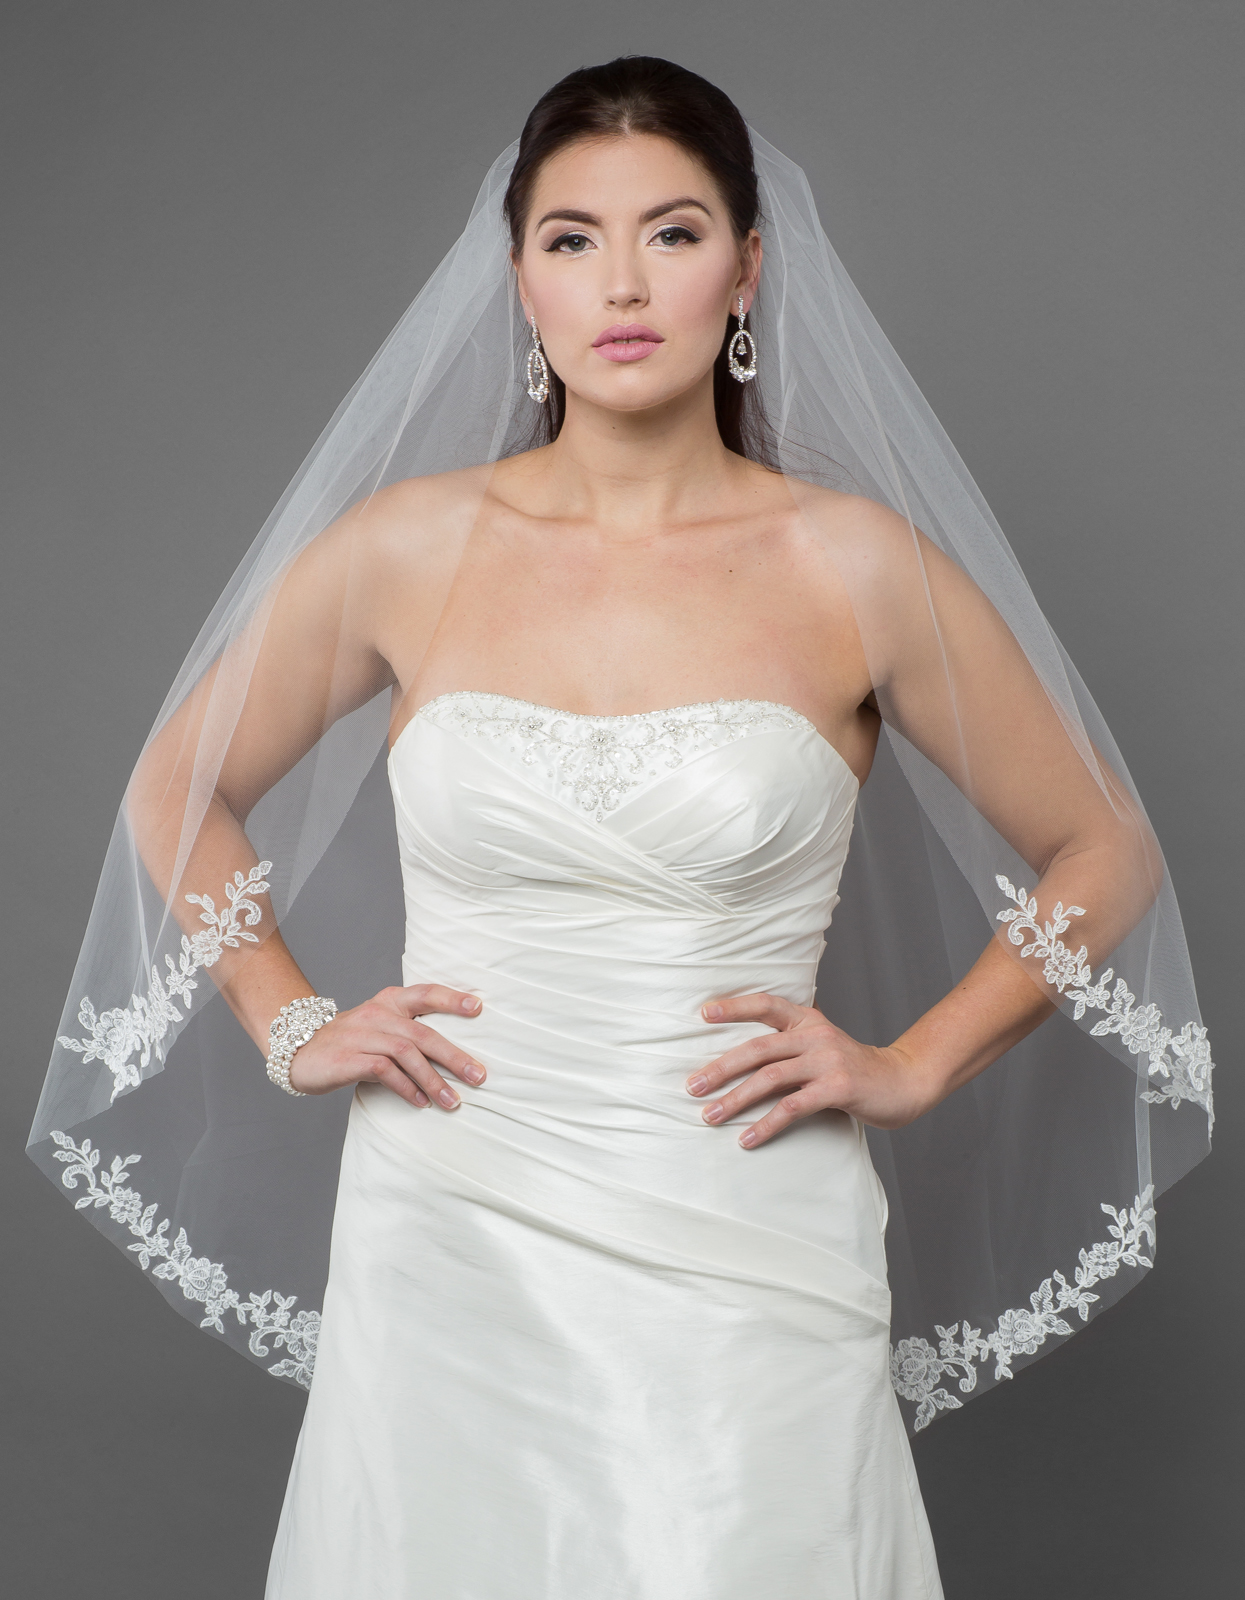 Bridal Classics Marquise Veil Collection MV-2391